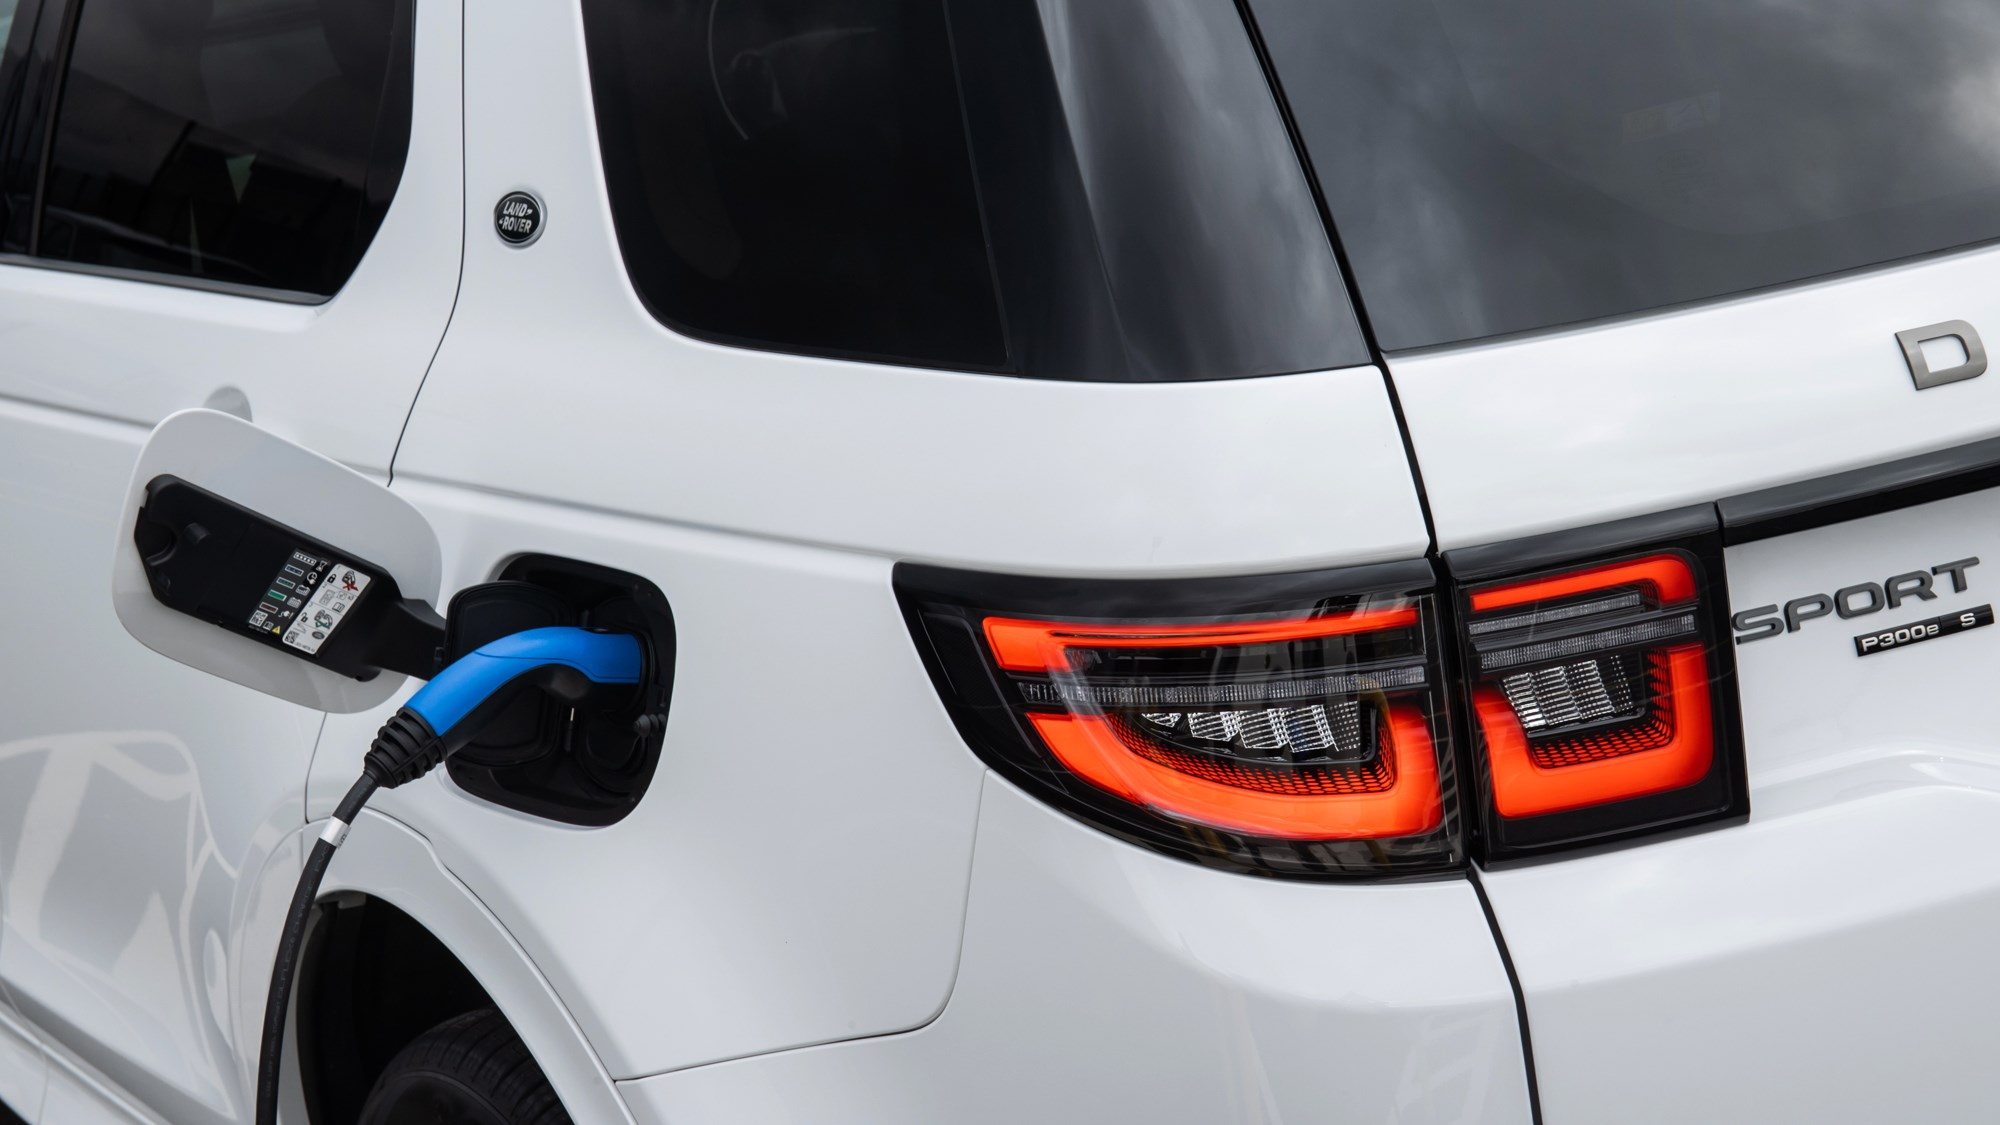 White Land Rover Discovery Sport P300e on charge